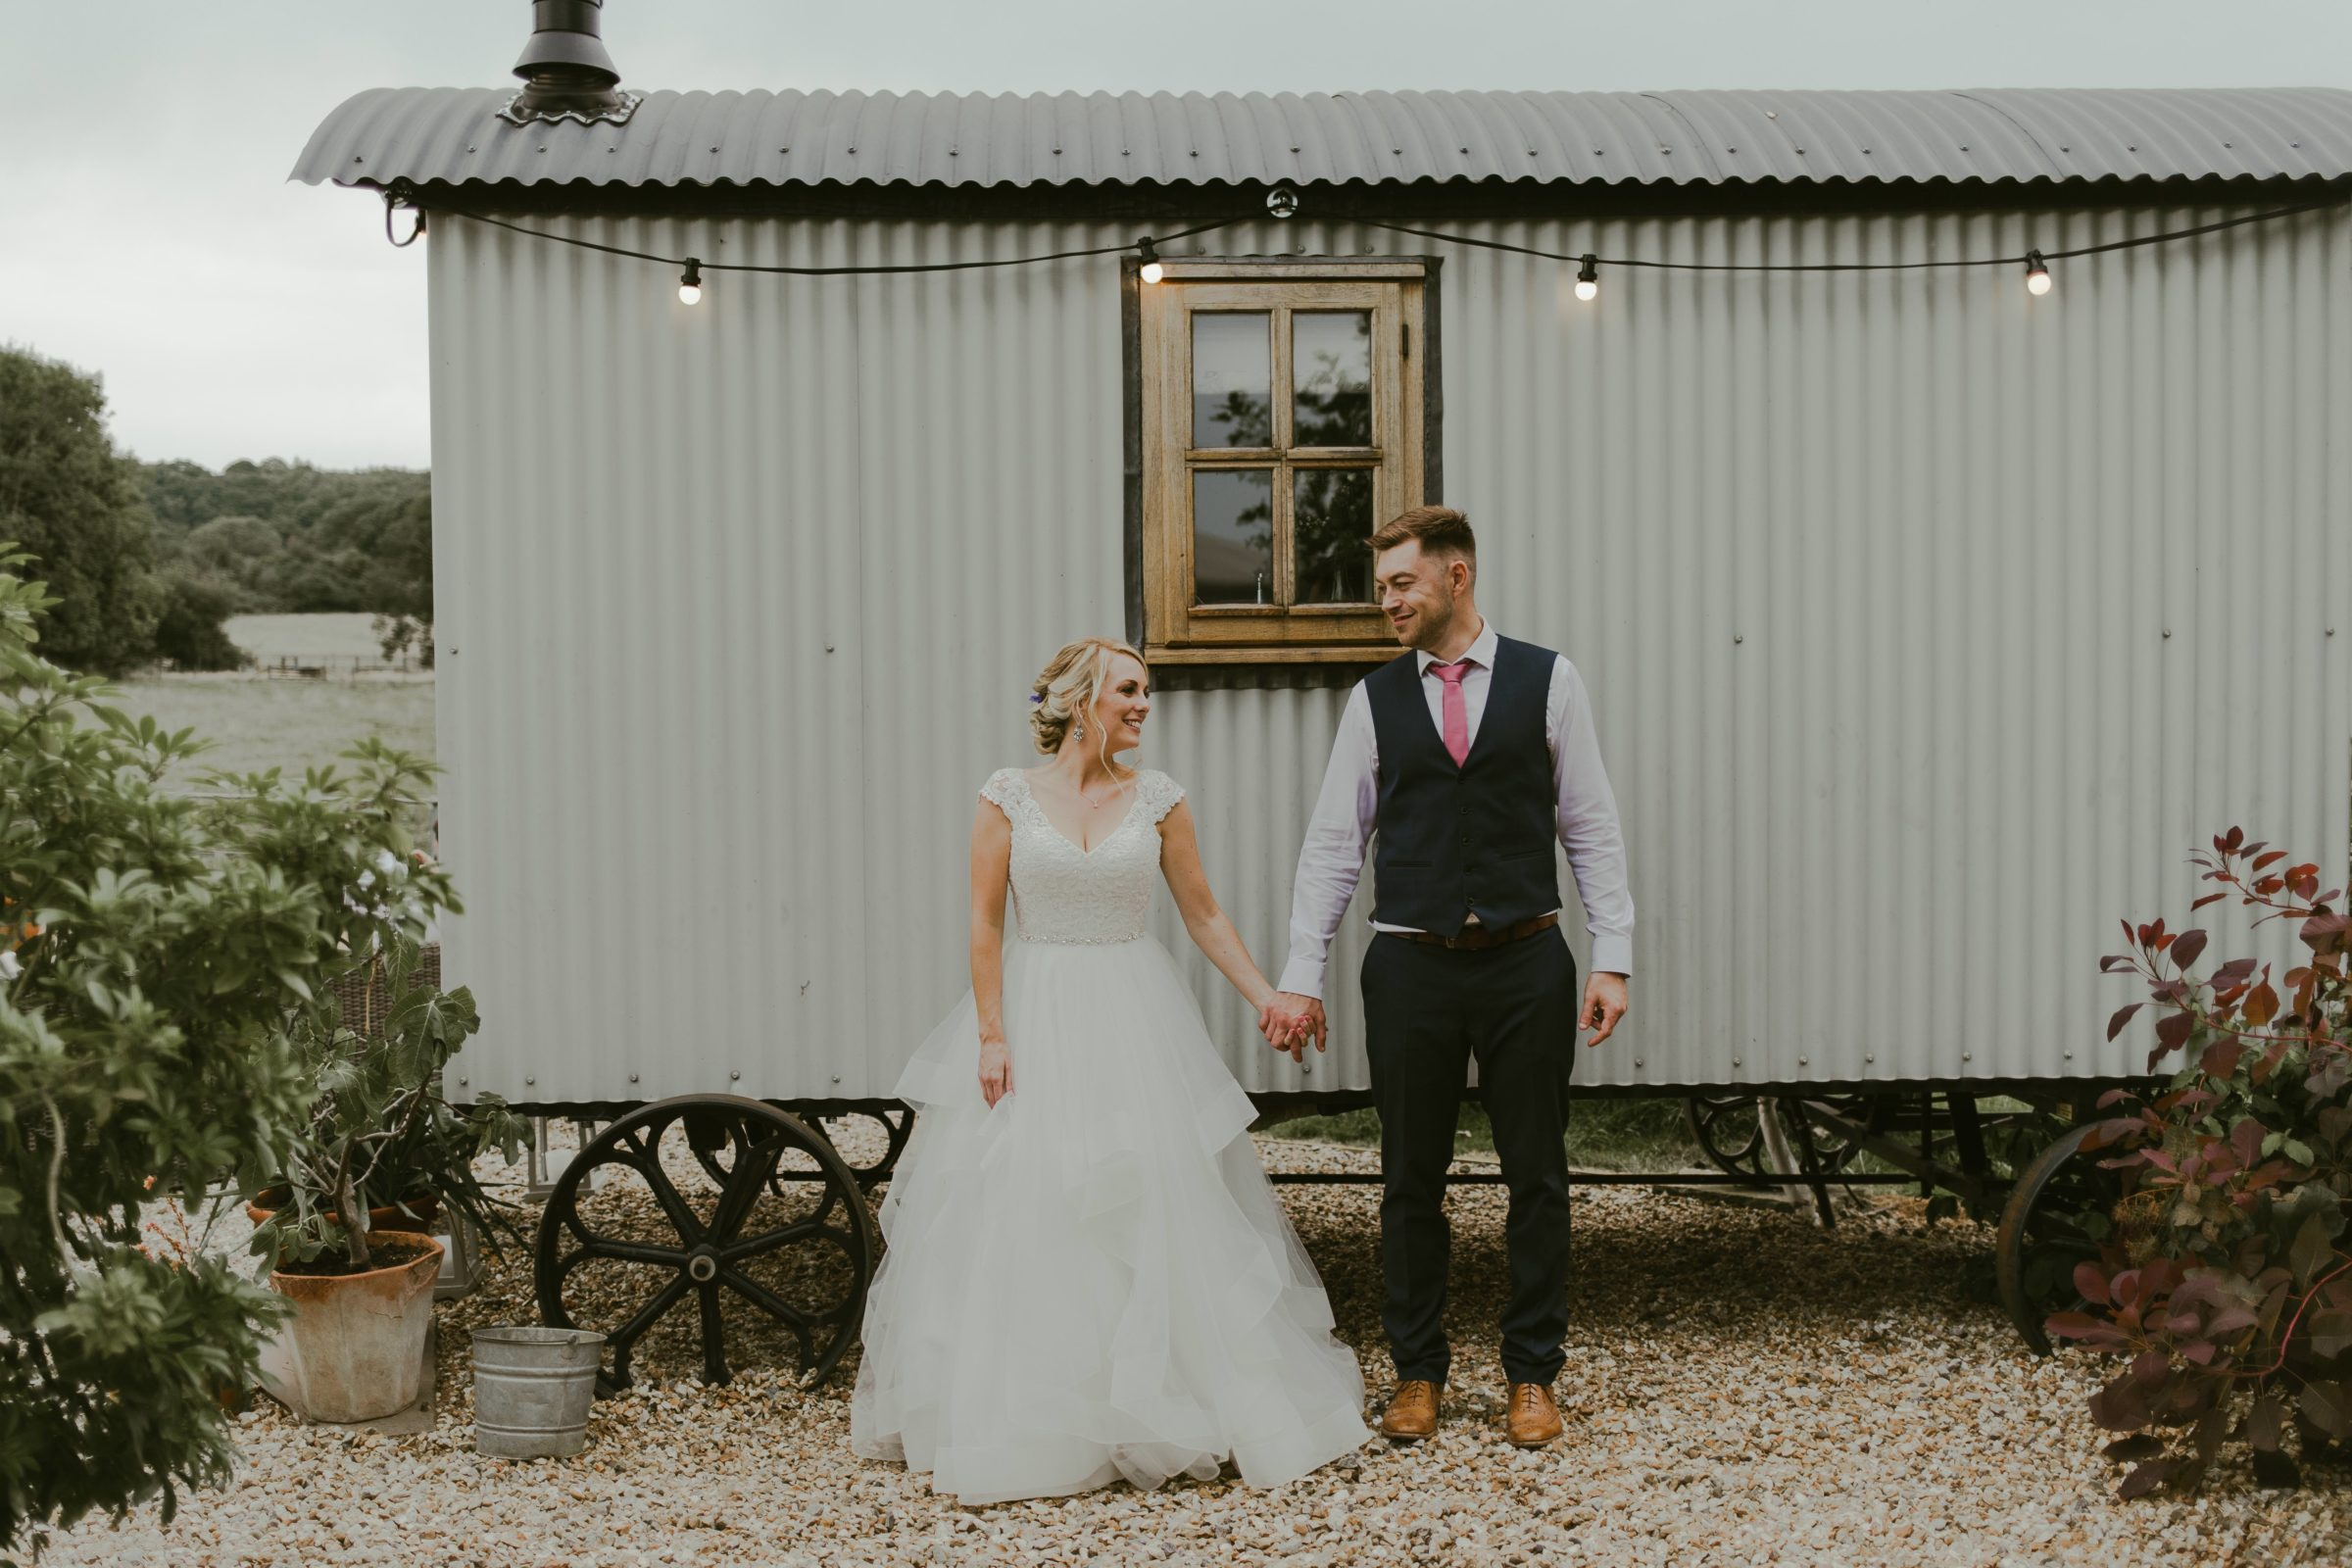 gate-street-barn-wedding-photography-photographer-surrey-uk-summer-weddings